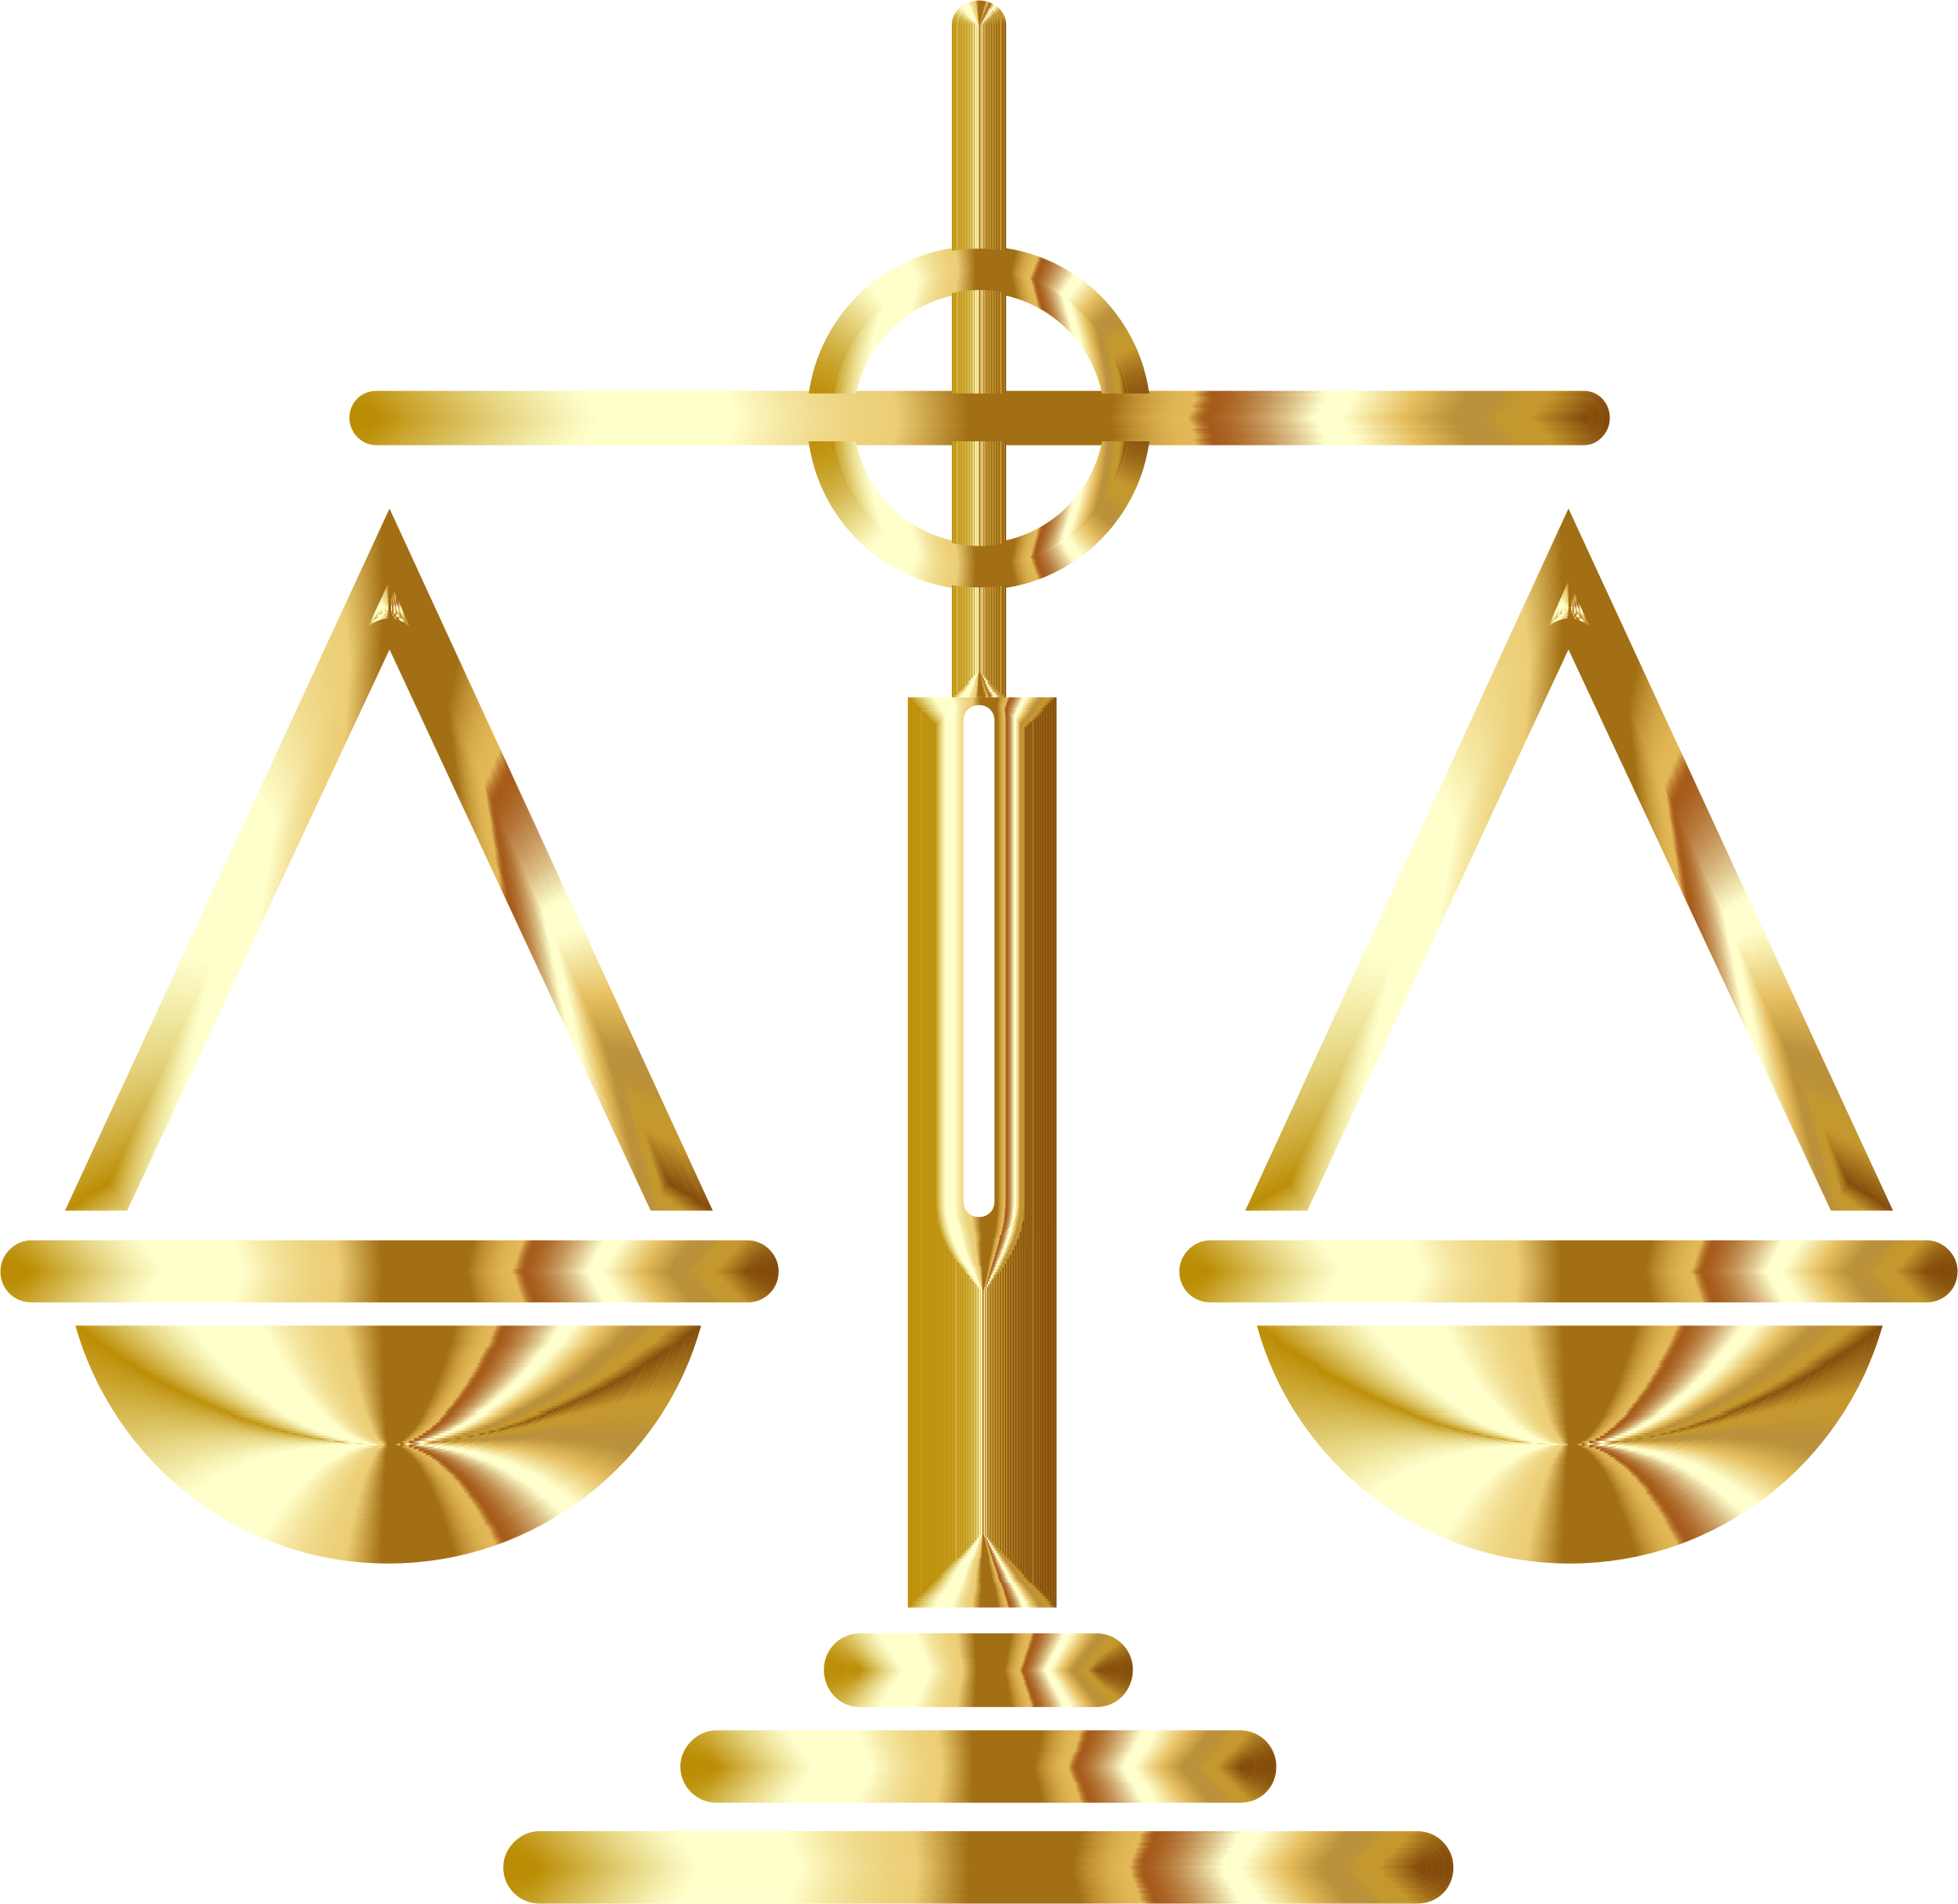 Gold Scales Of Justice Icon by GDJ